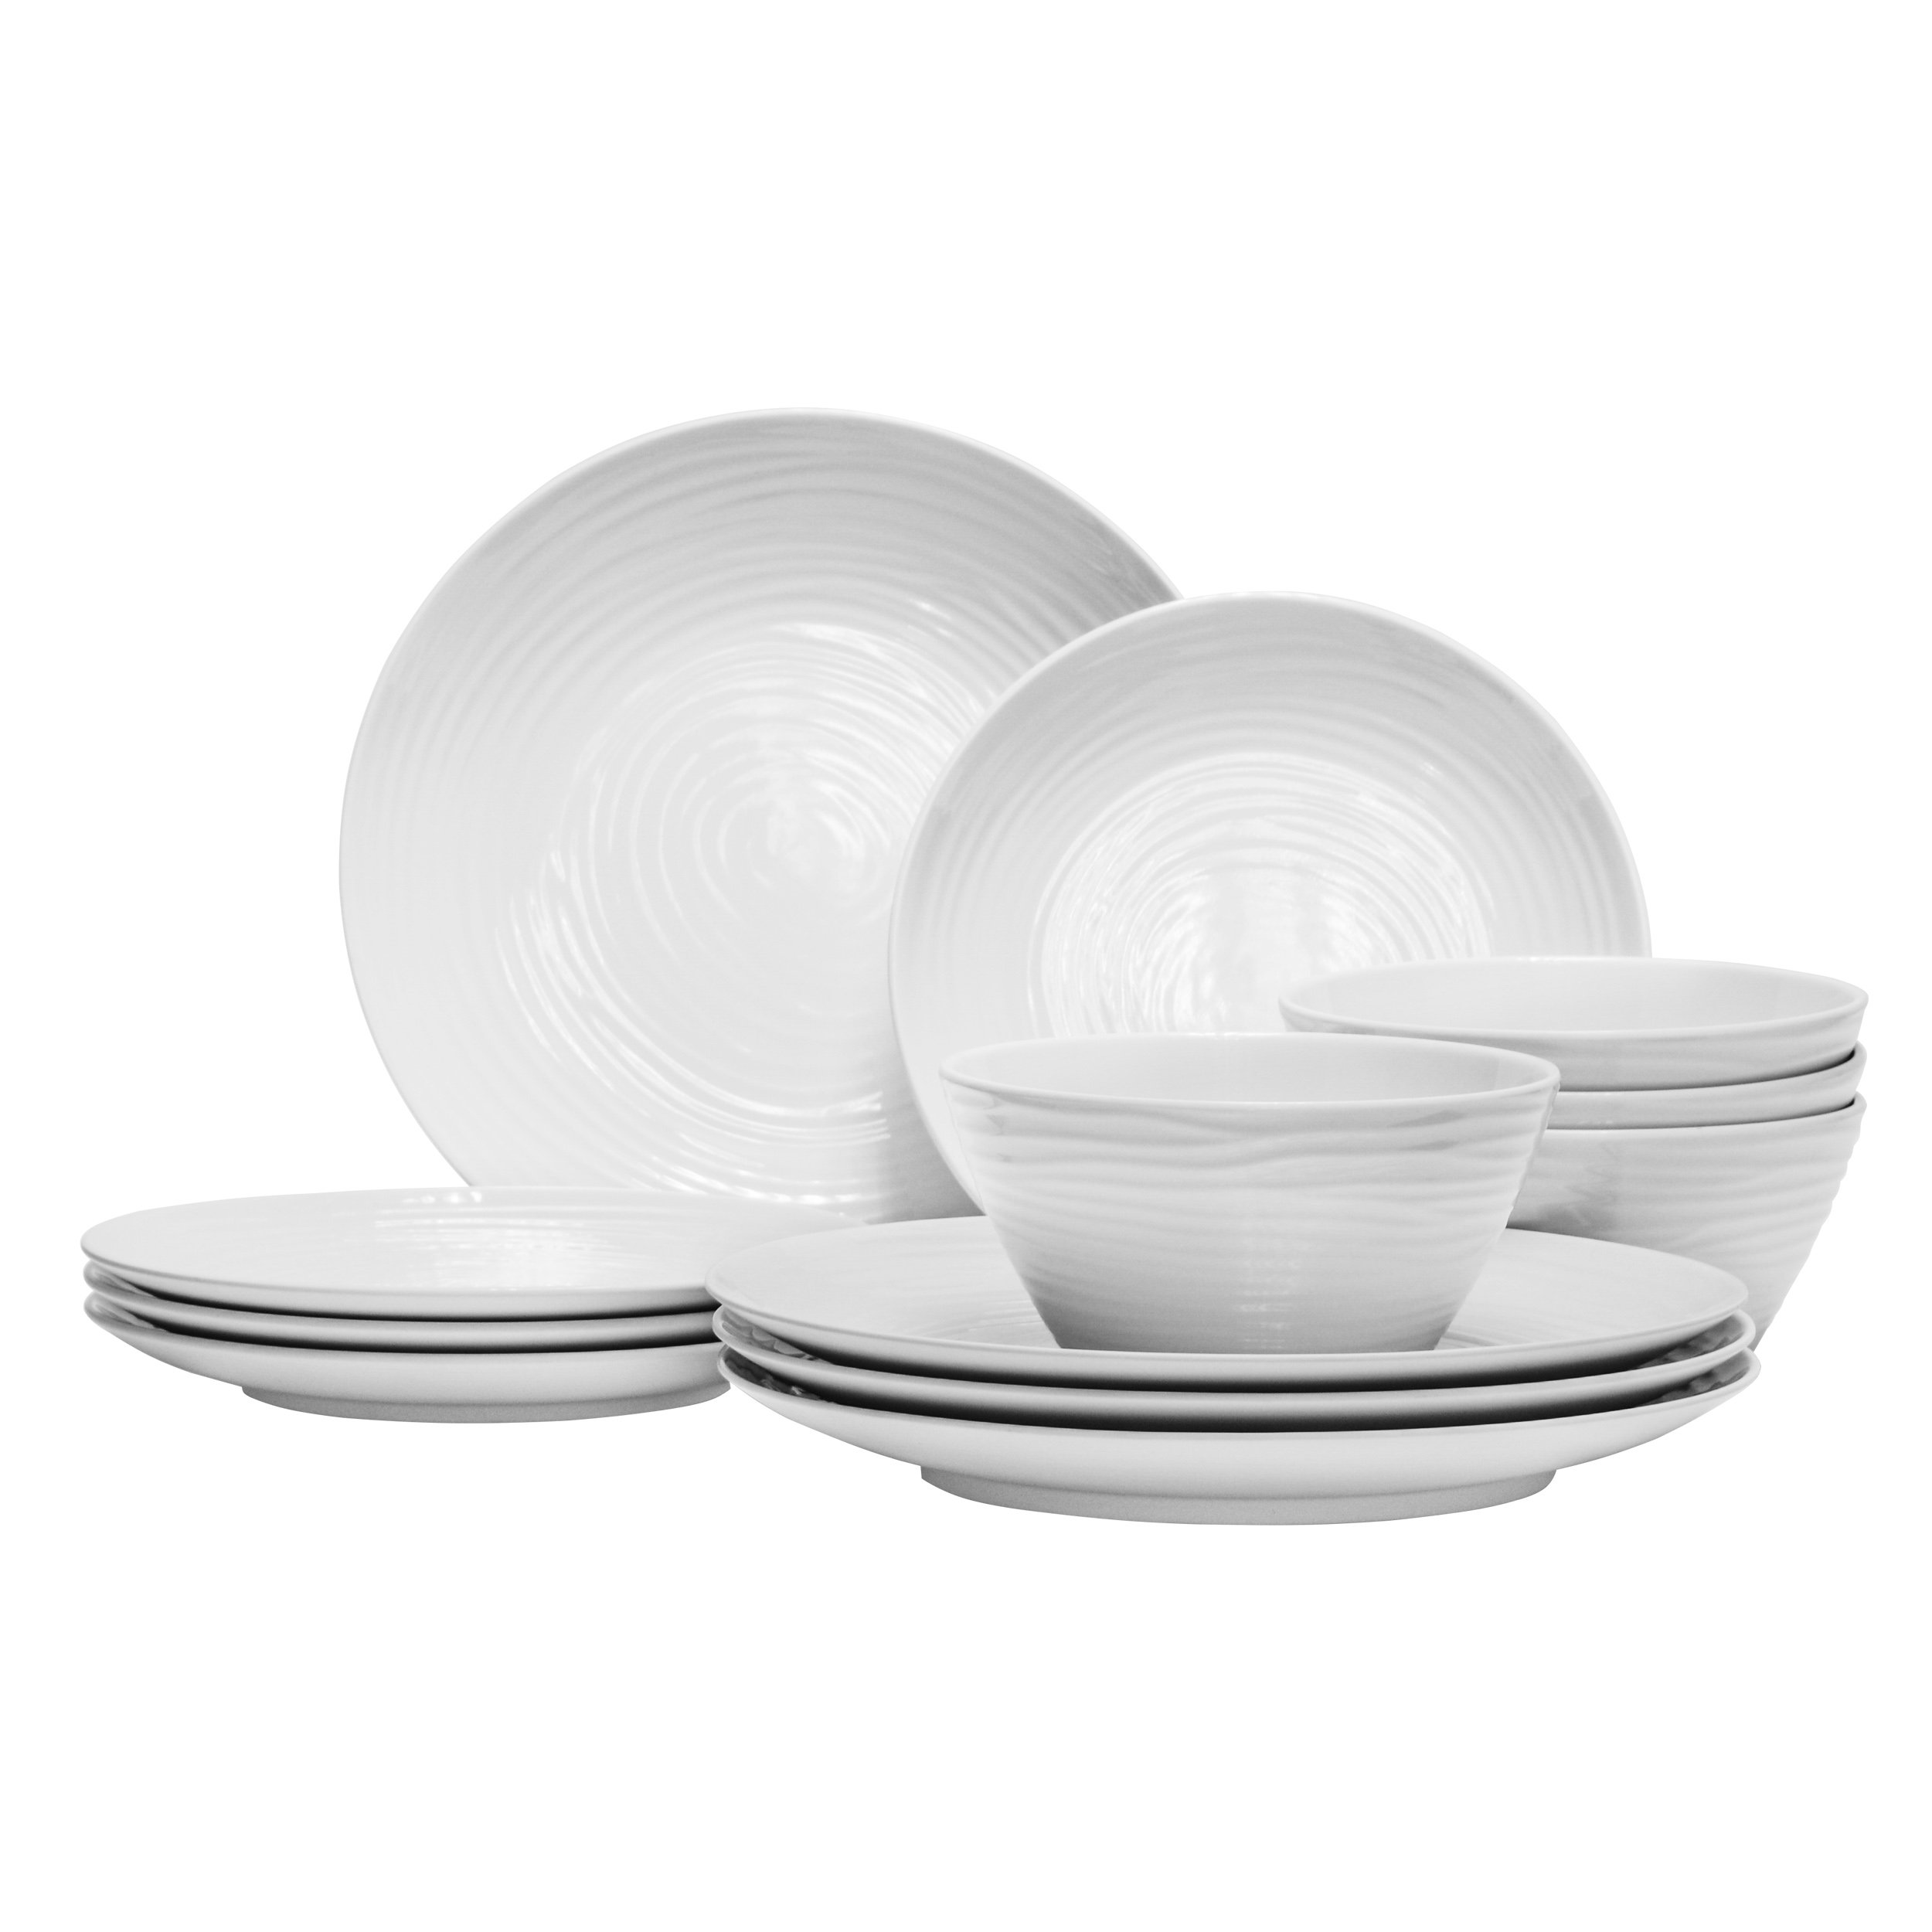 Parhoma White Melamine Home Dinnerware Set, 12-Piece Service for 4 by Parhoma (Image #5)